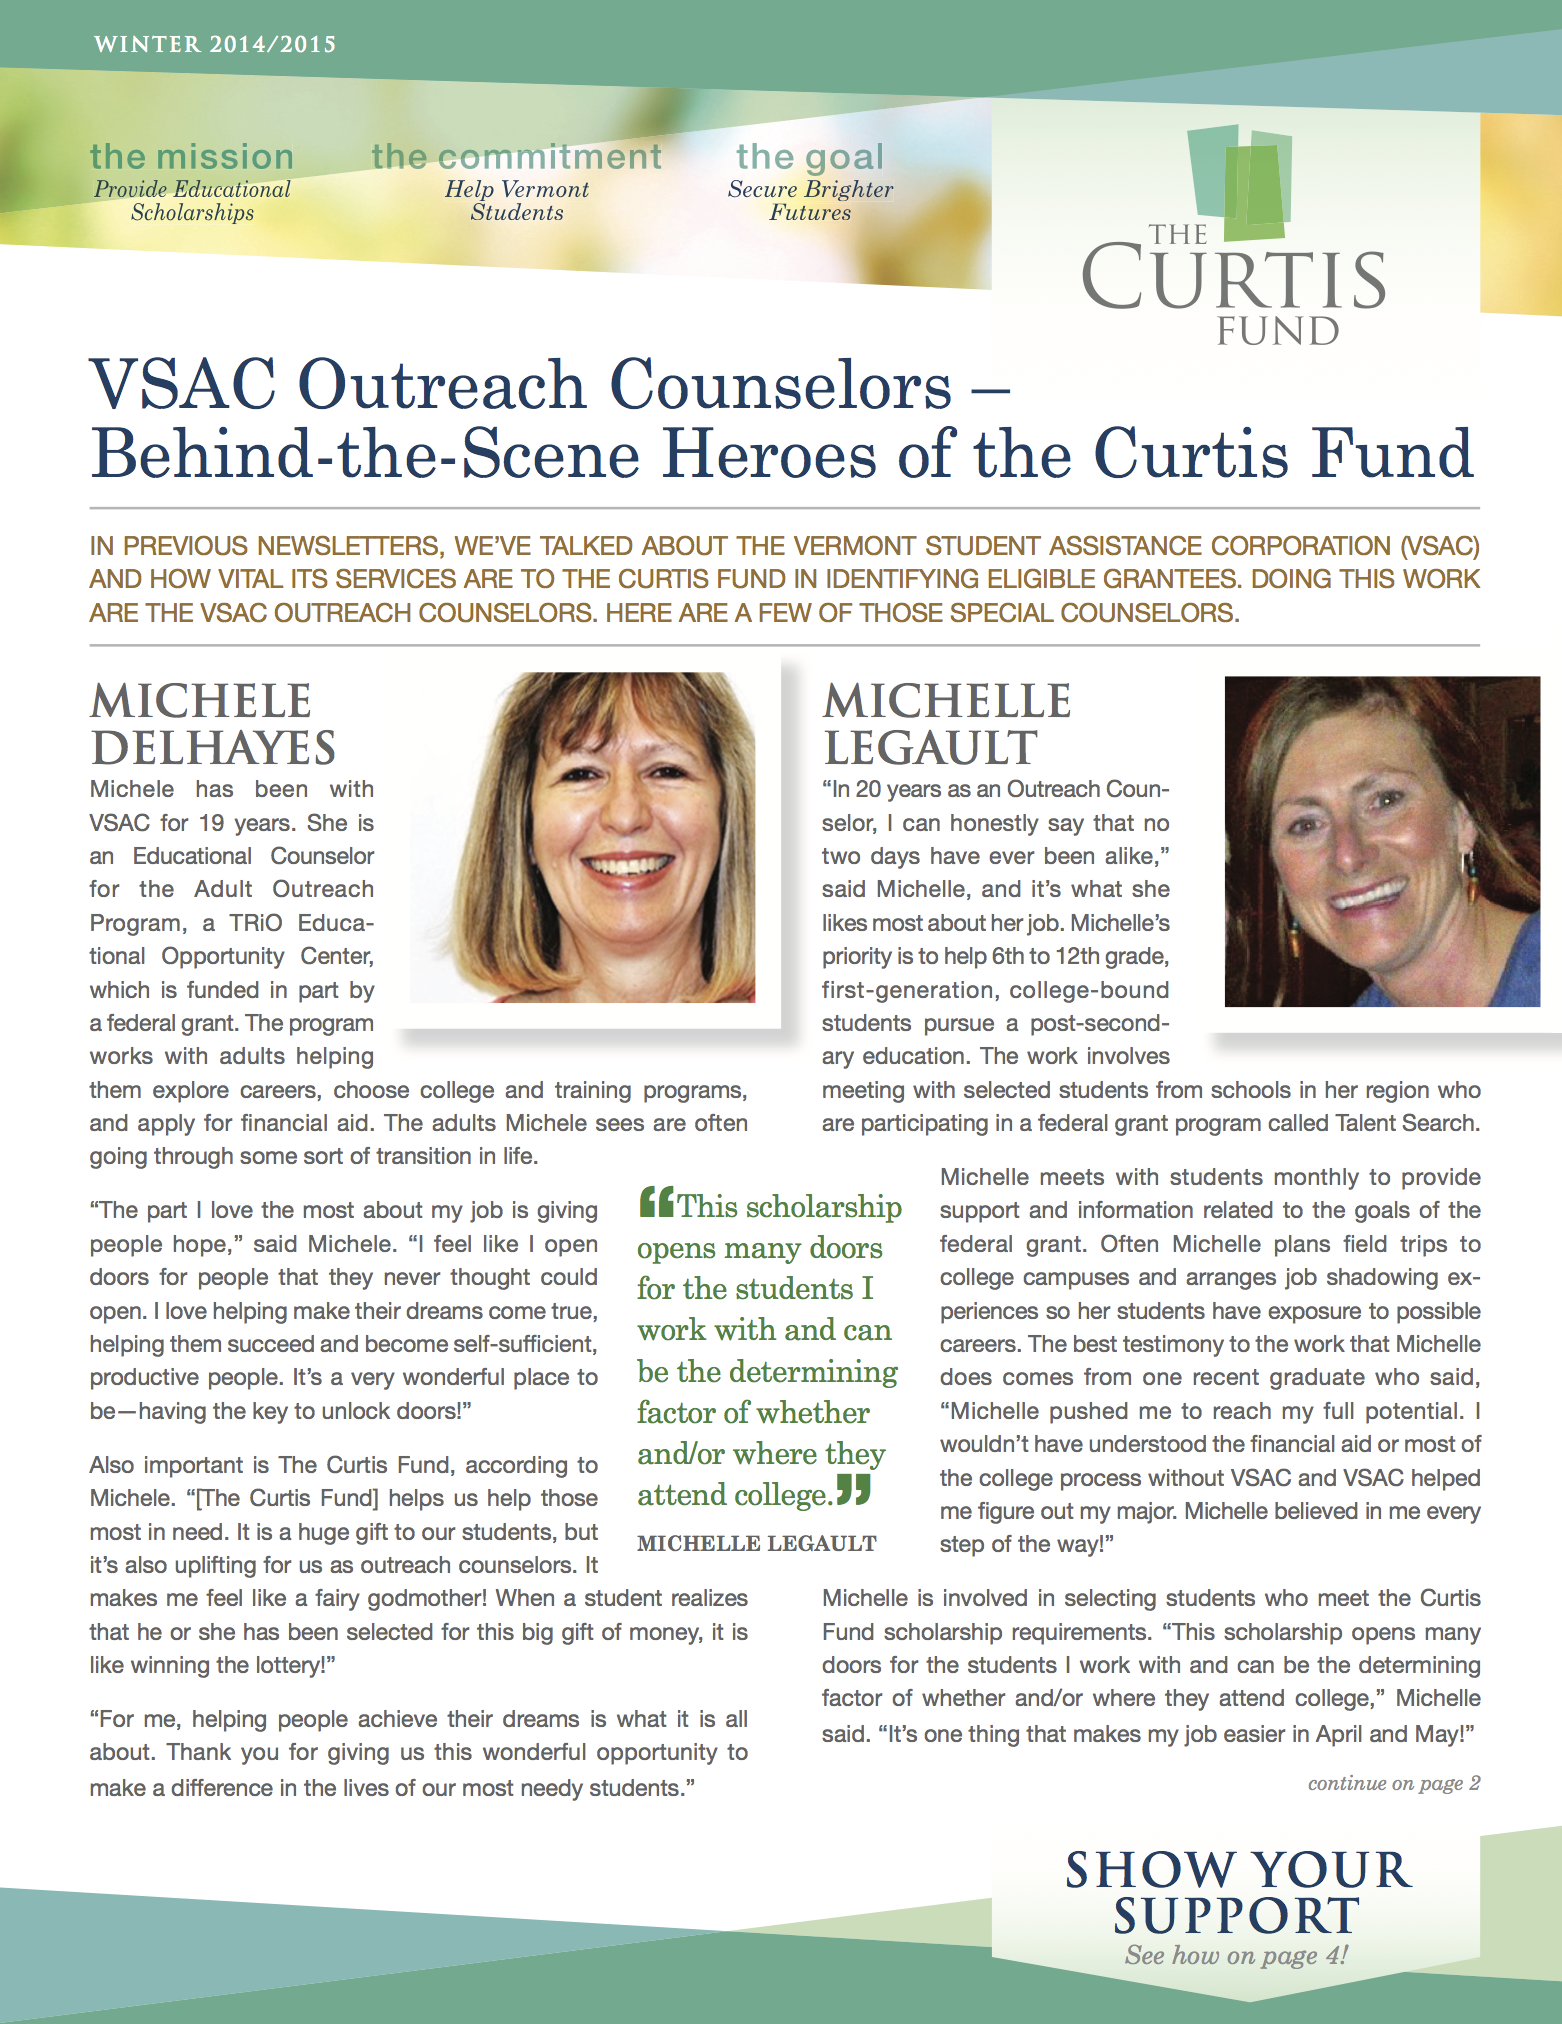 winter 2014/15 curtis fund newsletter cover